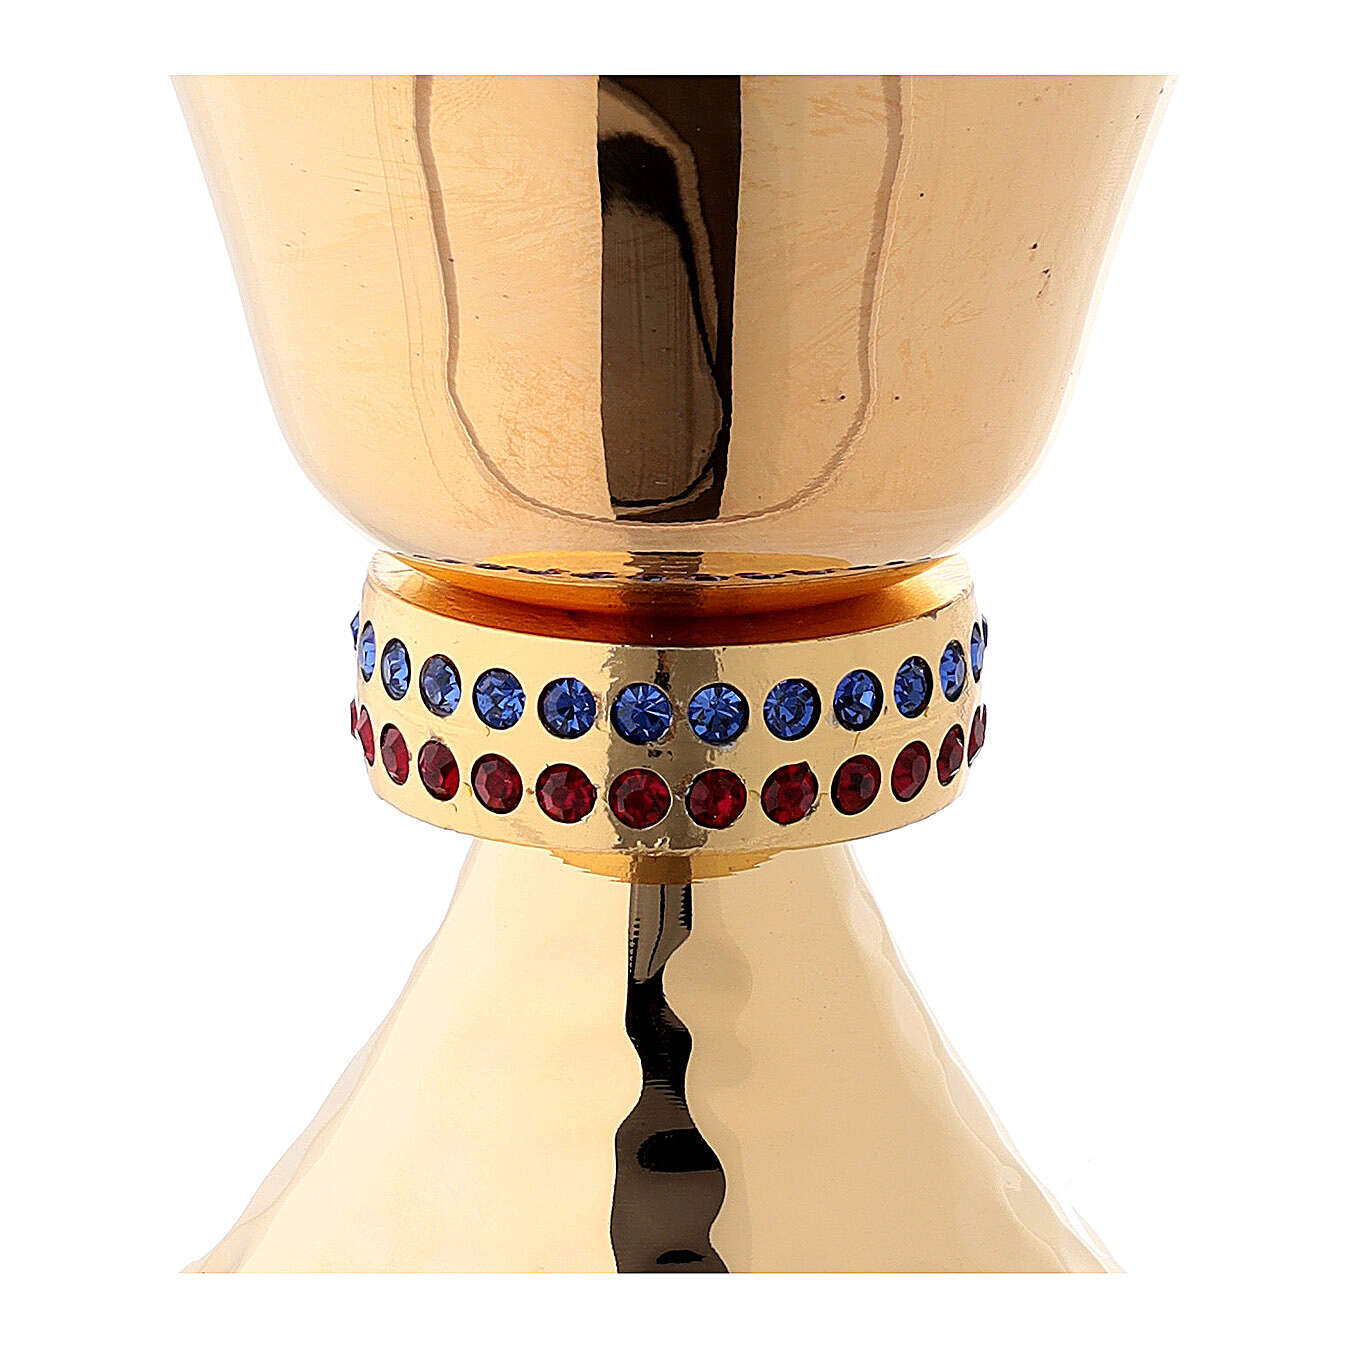 Small chalice and ciborium casted node with crystals in 24-karat gold plated brass 4